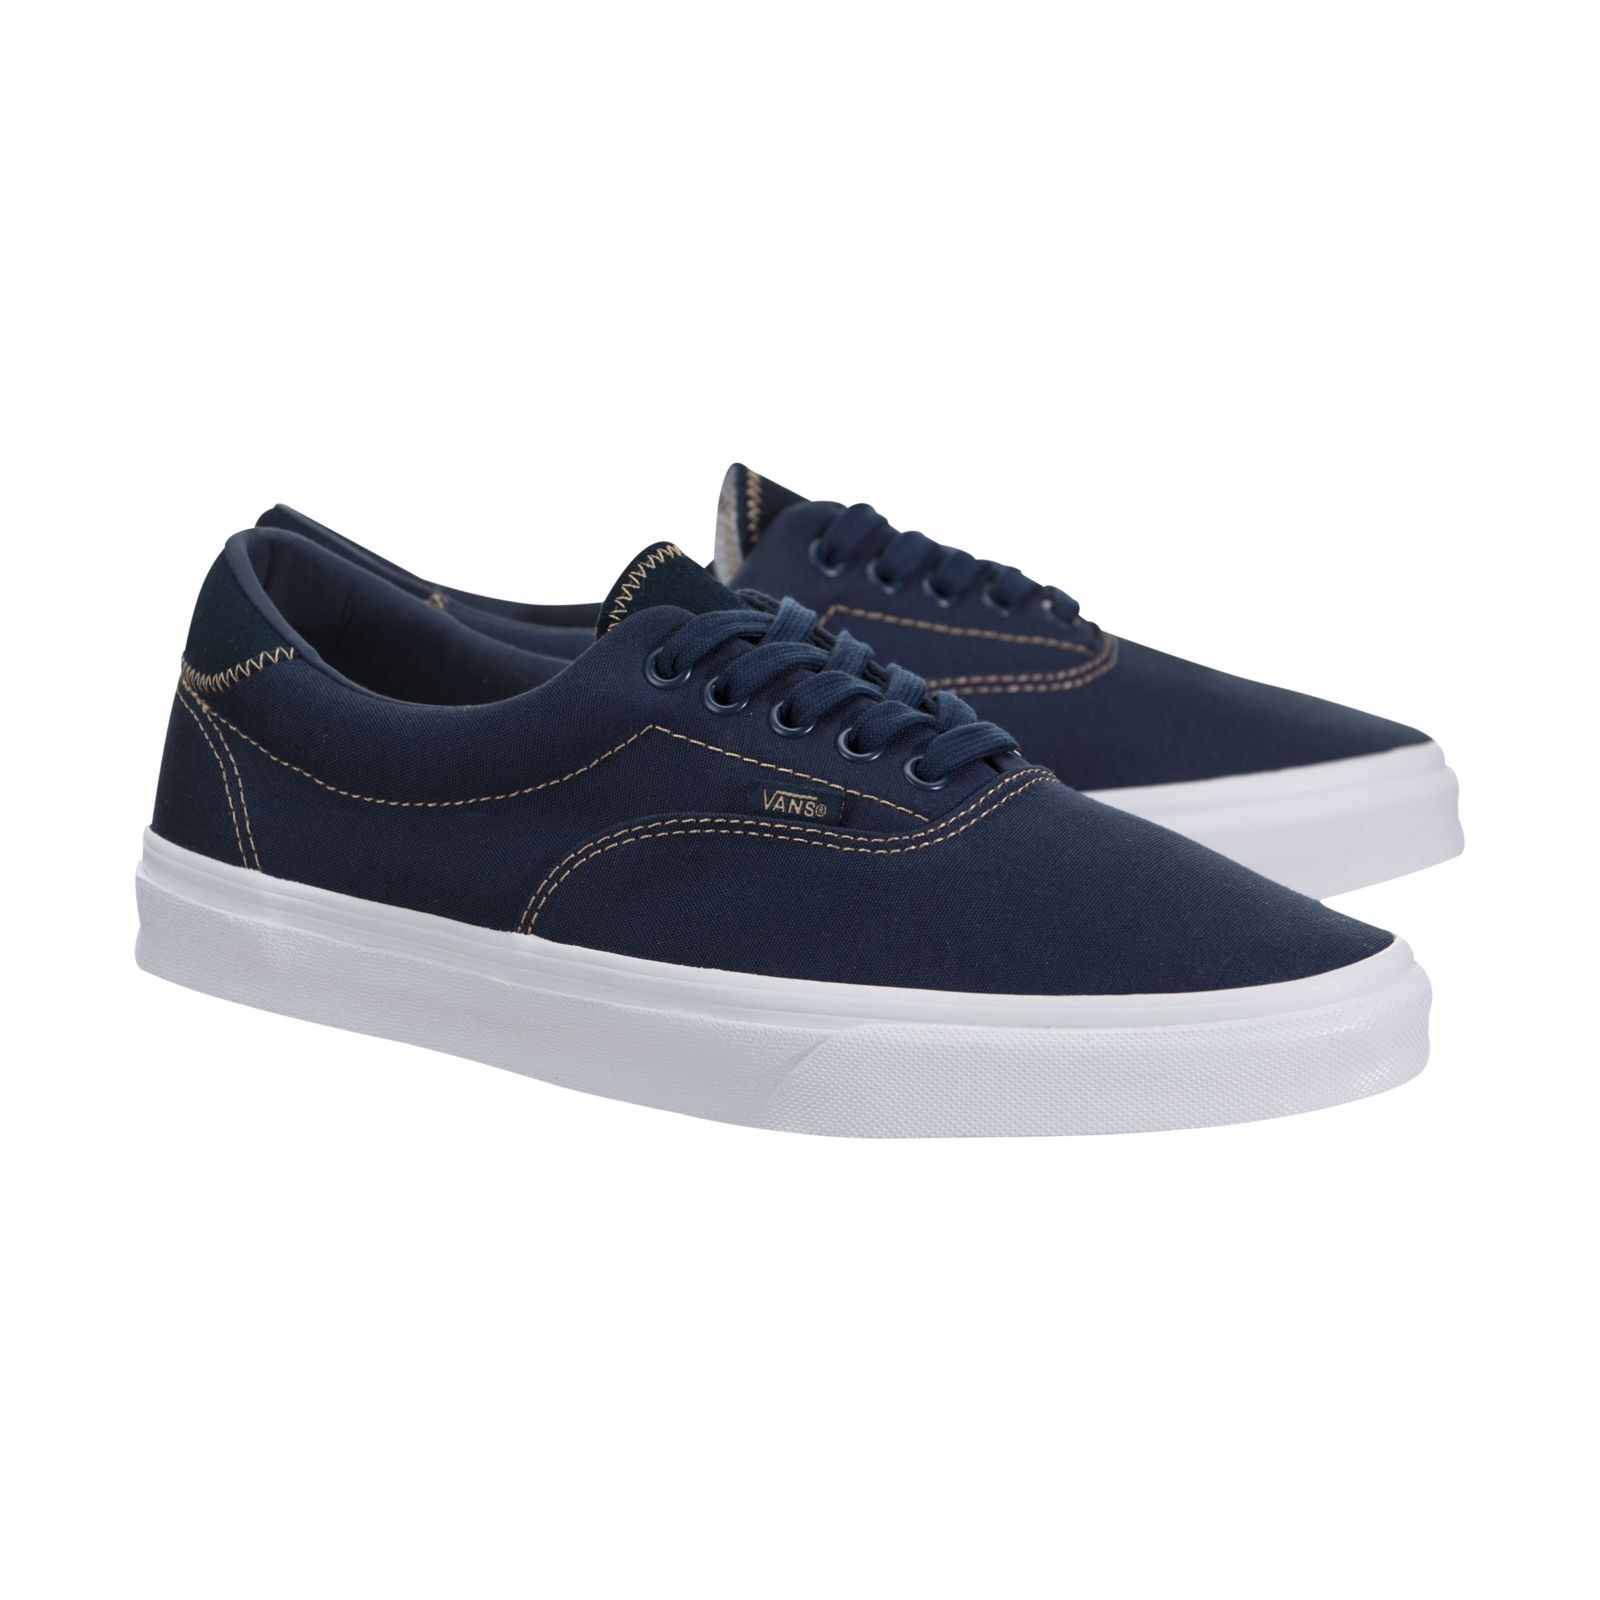 50fe167961 VANS Era 59 Blue Sand Canvas Classic Men Skate Boarding Shoes SNEAKERS  71010225 9.5. About this product. Picture 1 of 5  Picture 2 of 5 ...